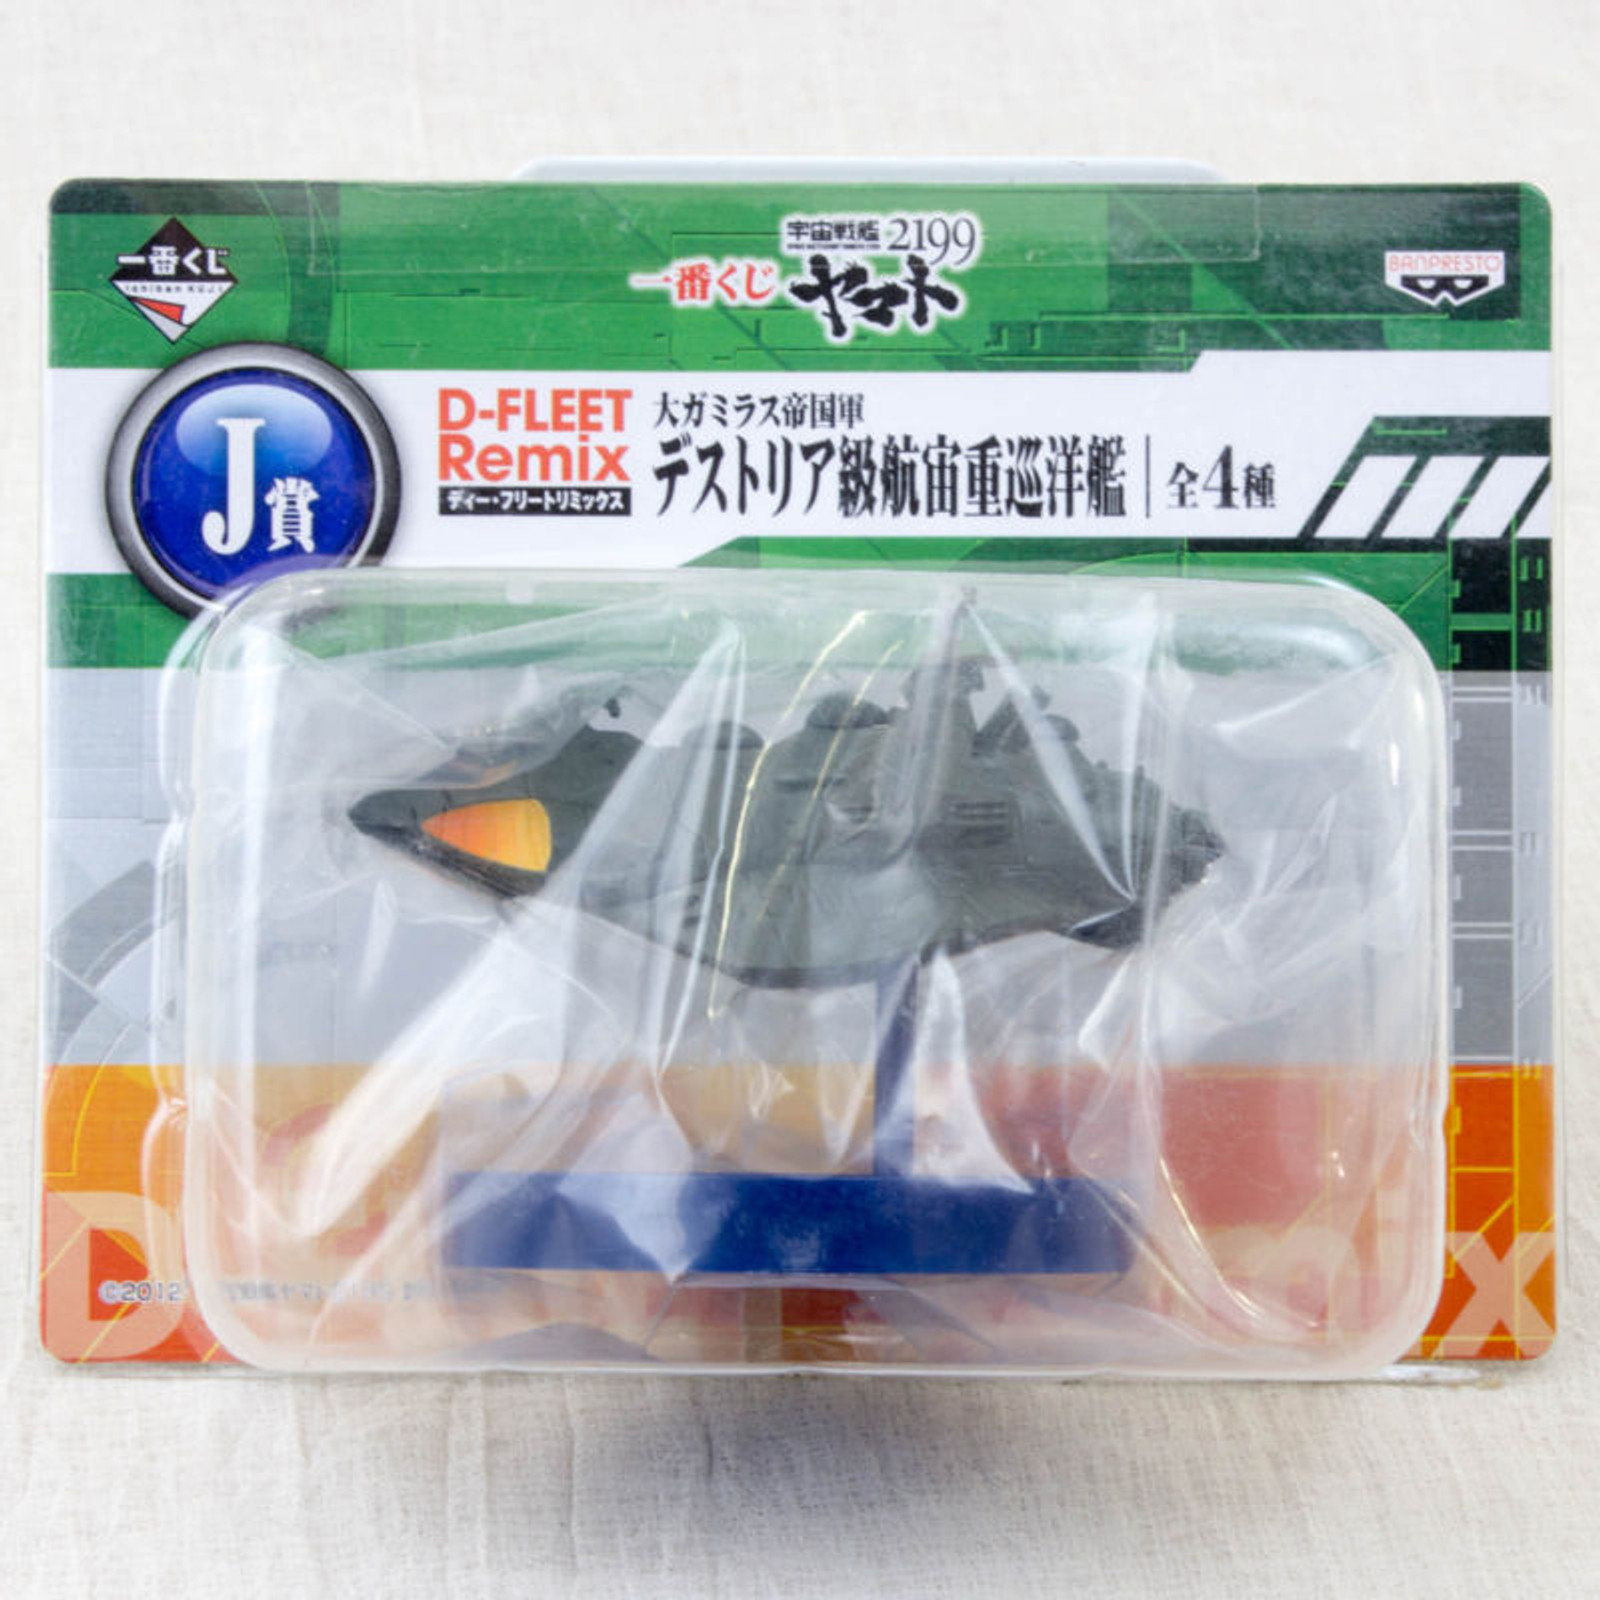 Space Battleship YAMATO 2199 D-Fleet Remix Destrier Figure JAPAN ANIME